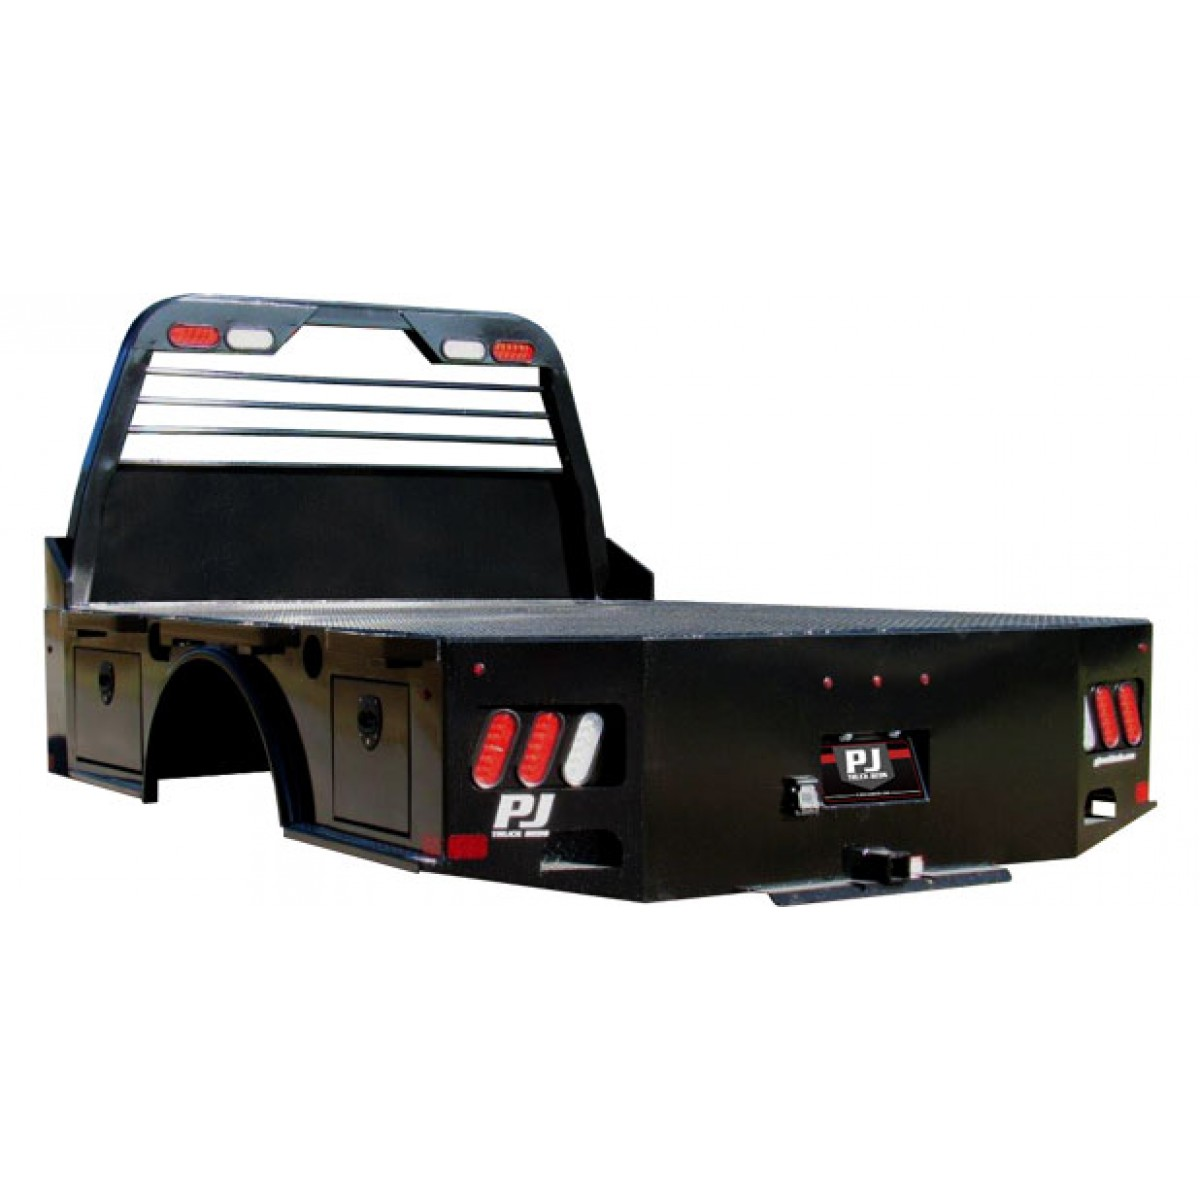 New pj gs flatbed pj pickup flatbeds bumpers for Bed tech 3000